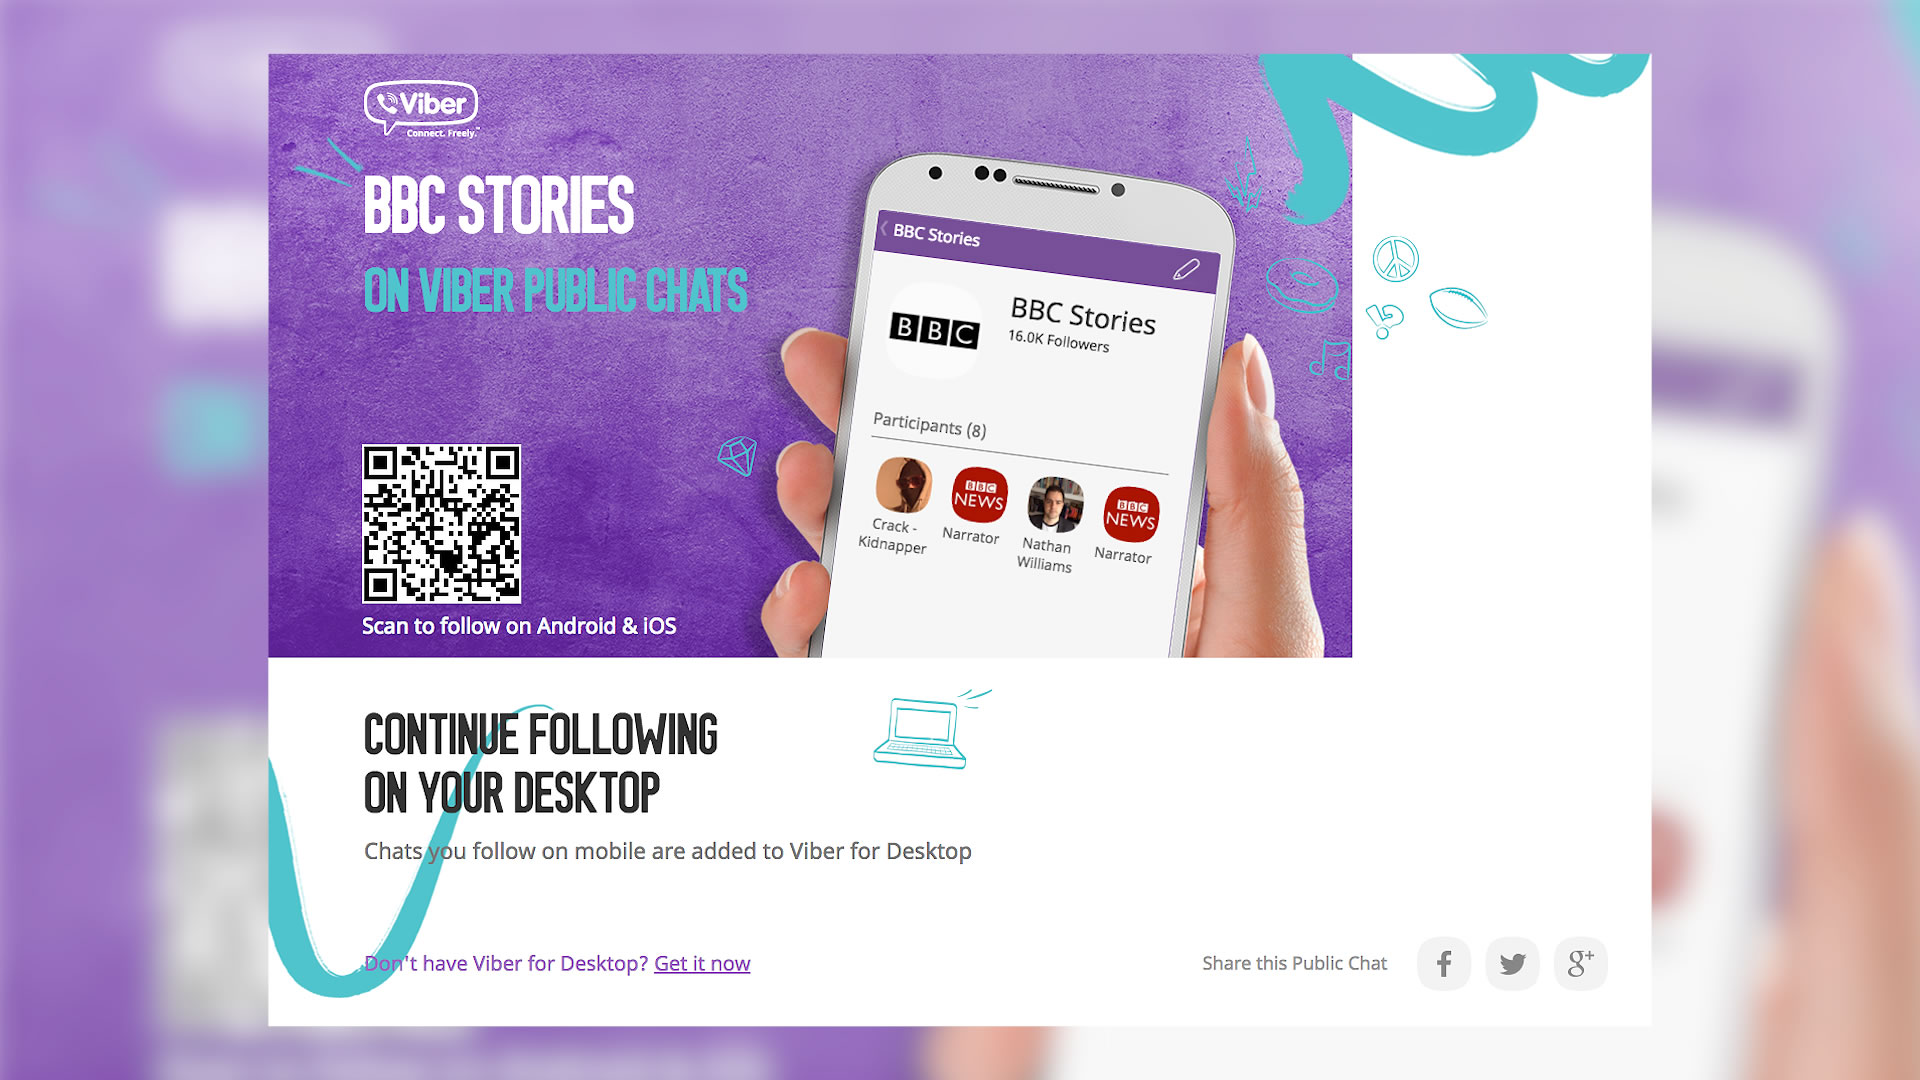 BBC Partners with Viber Public Chats as a New Media